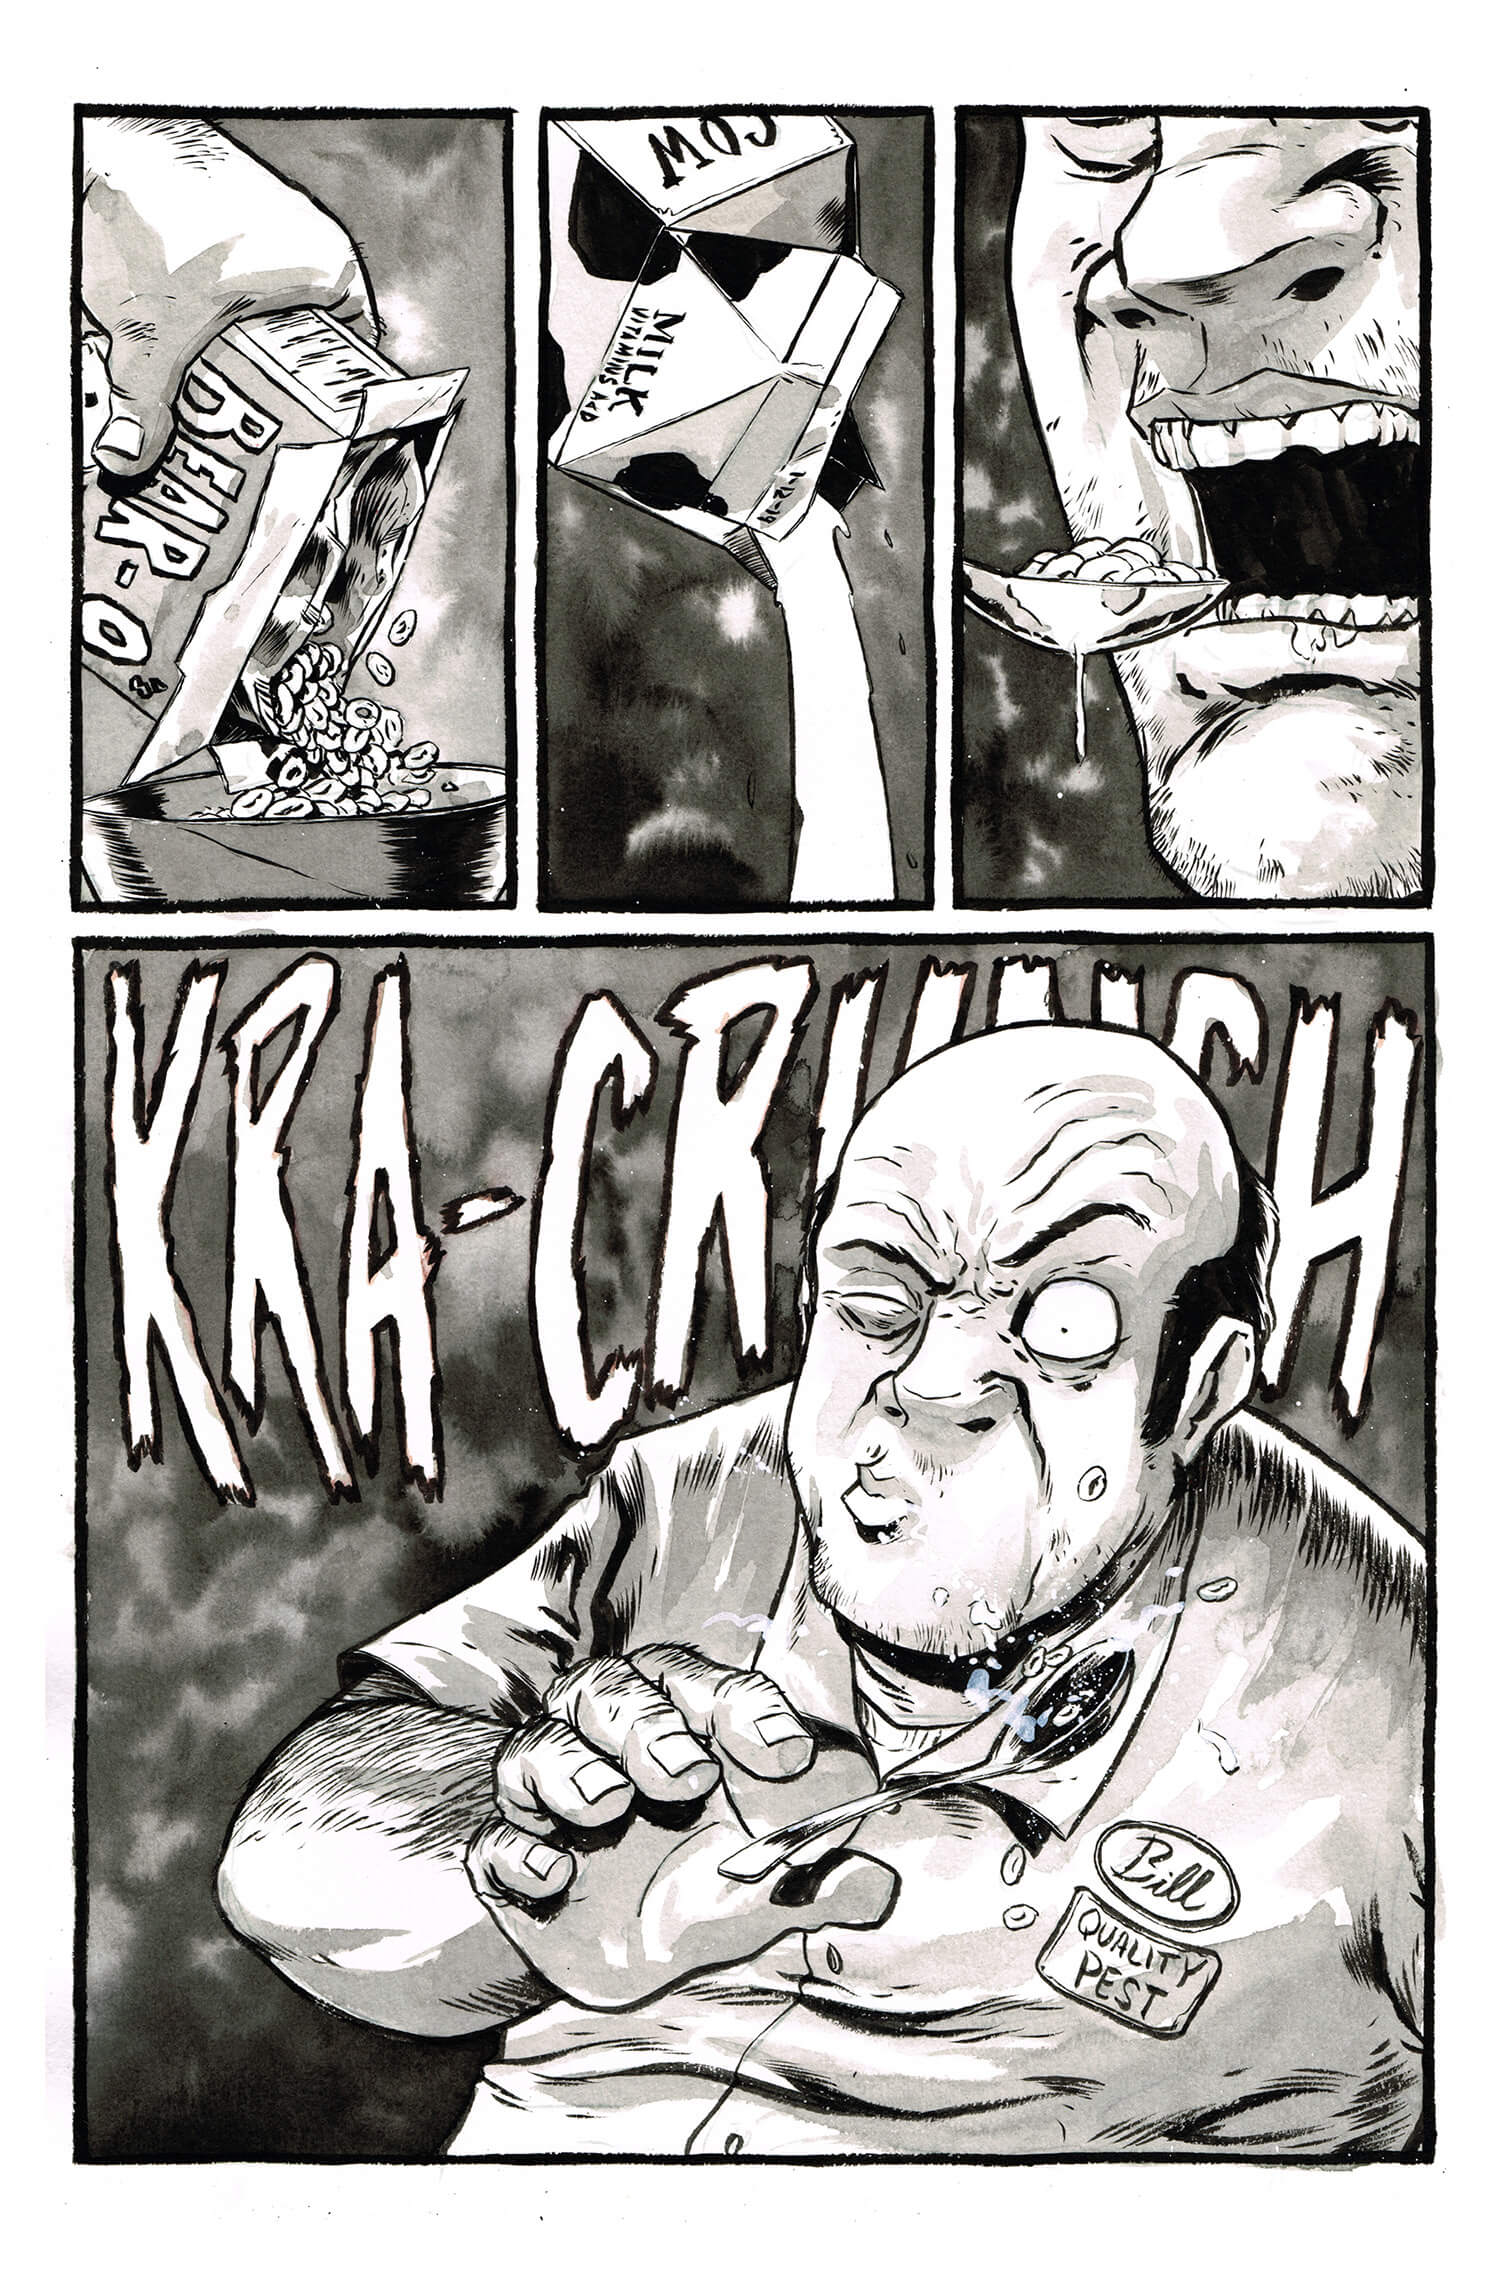 The Exterminator, page 1, by Sam Costello and Kelly Williams